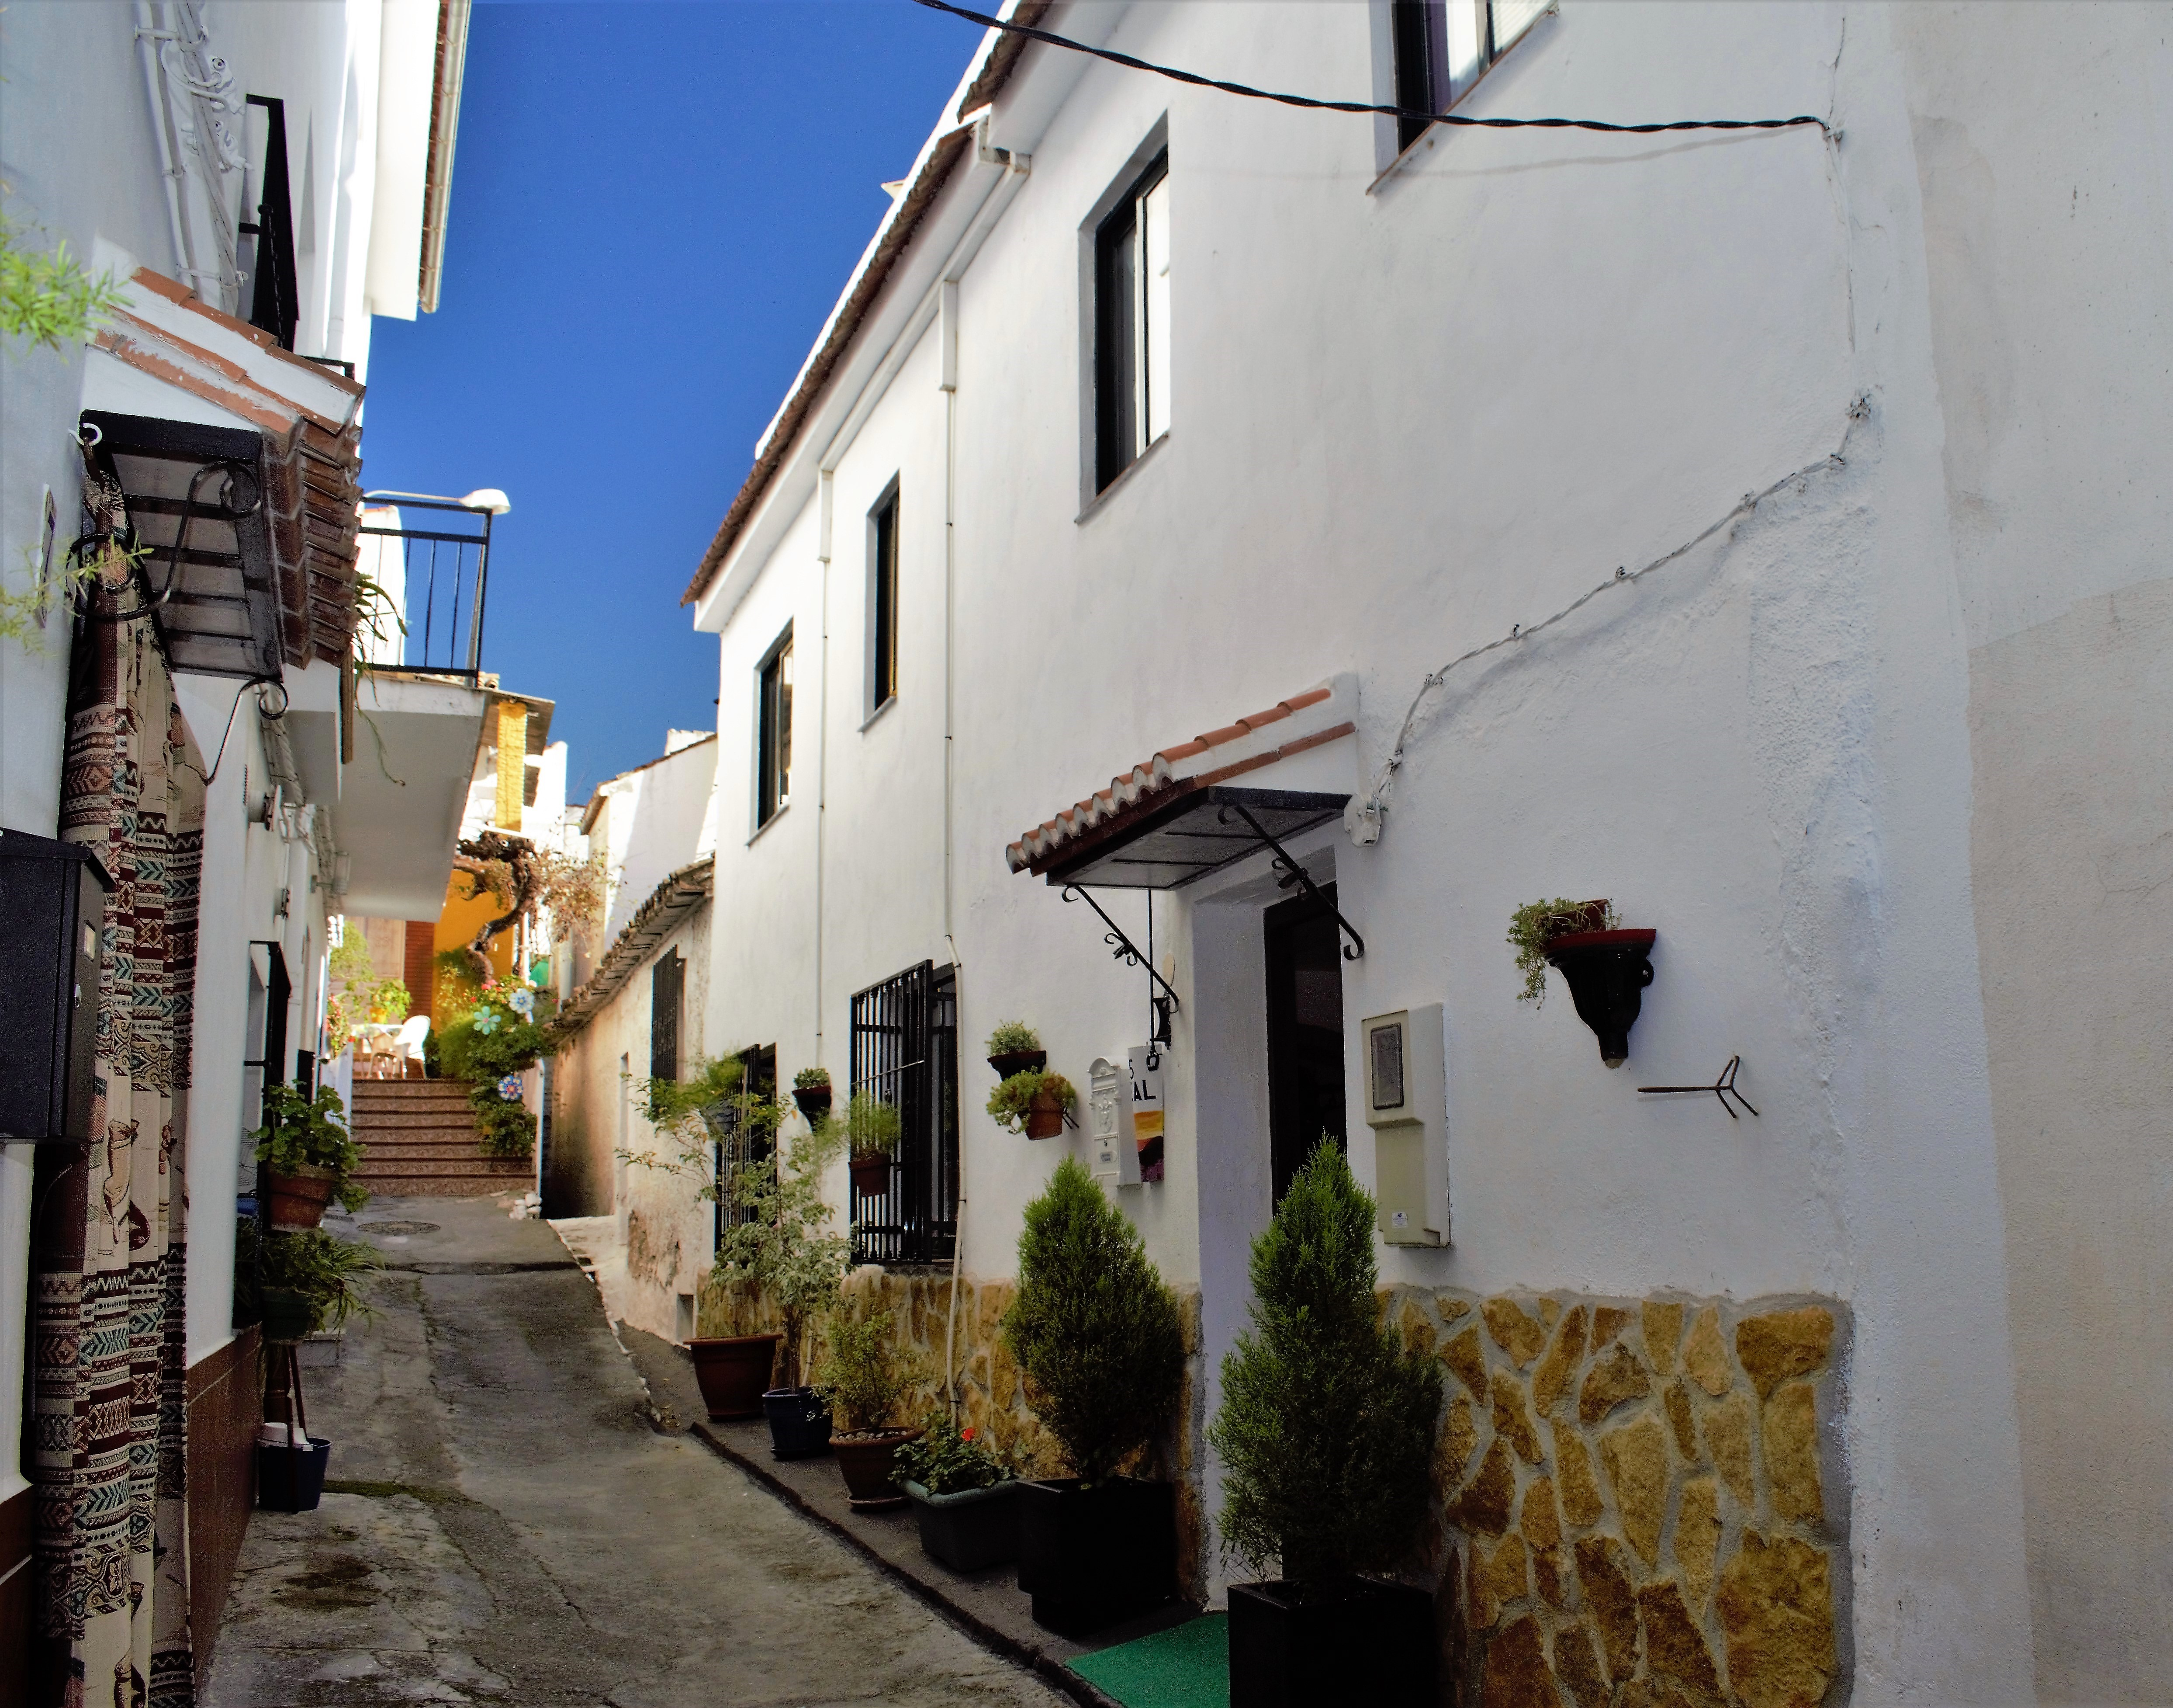 4 bedroom Townhouse for sale in Pinos Genil